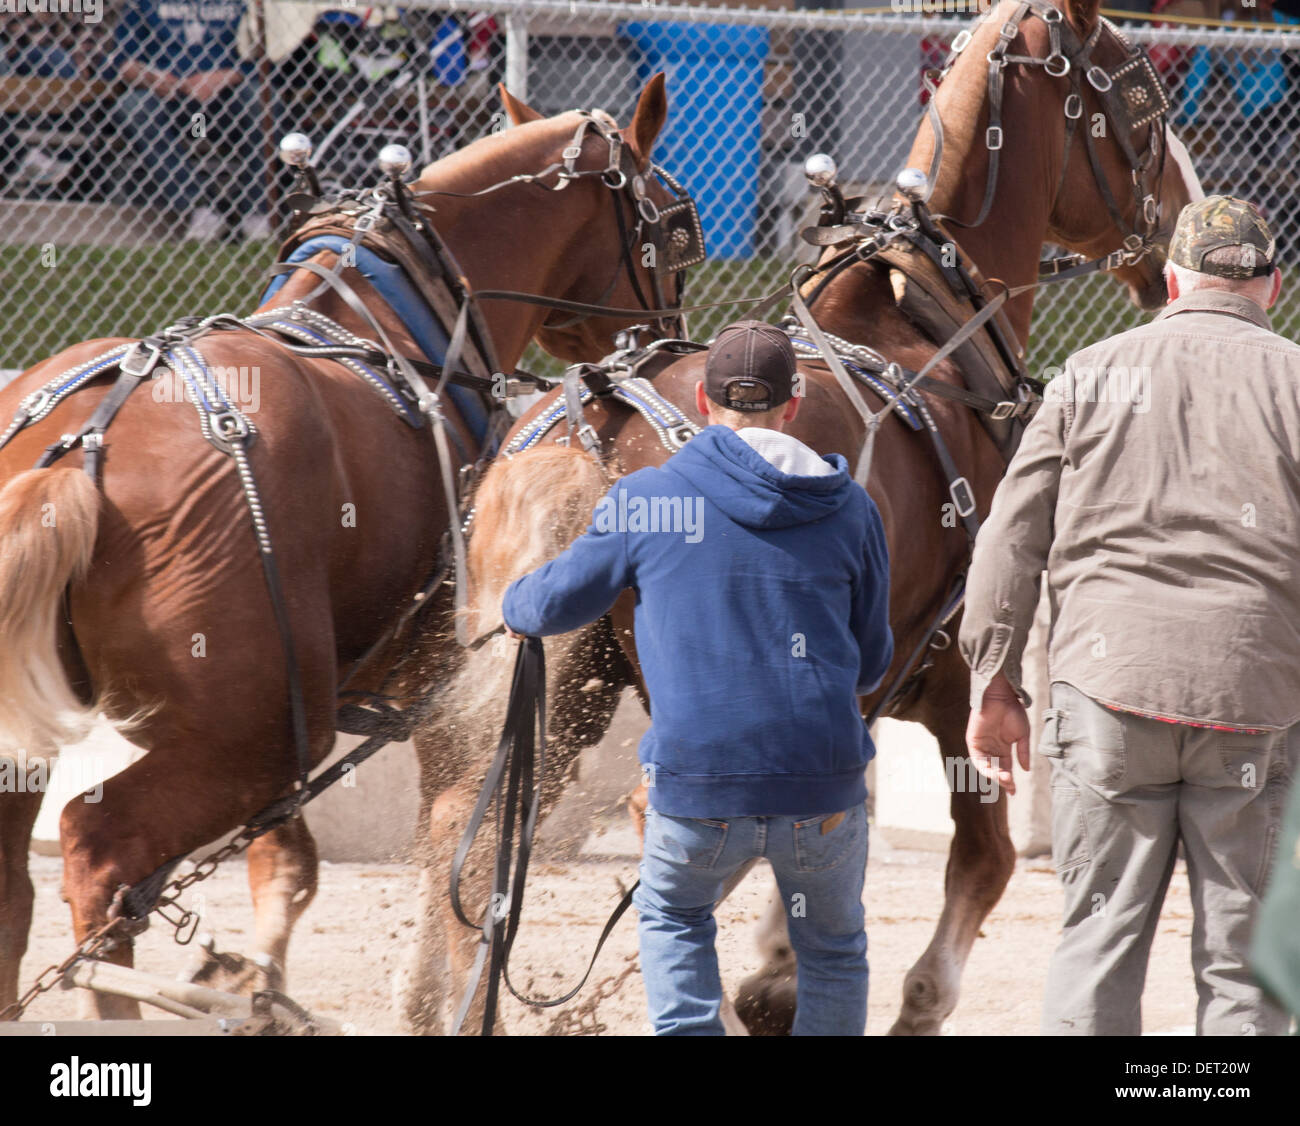 belgian-horse-team-pulling-load-in-horse-pull-competition-at-lindsay-DET20W.jpg